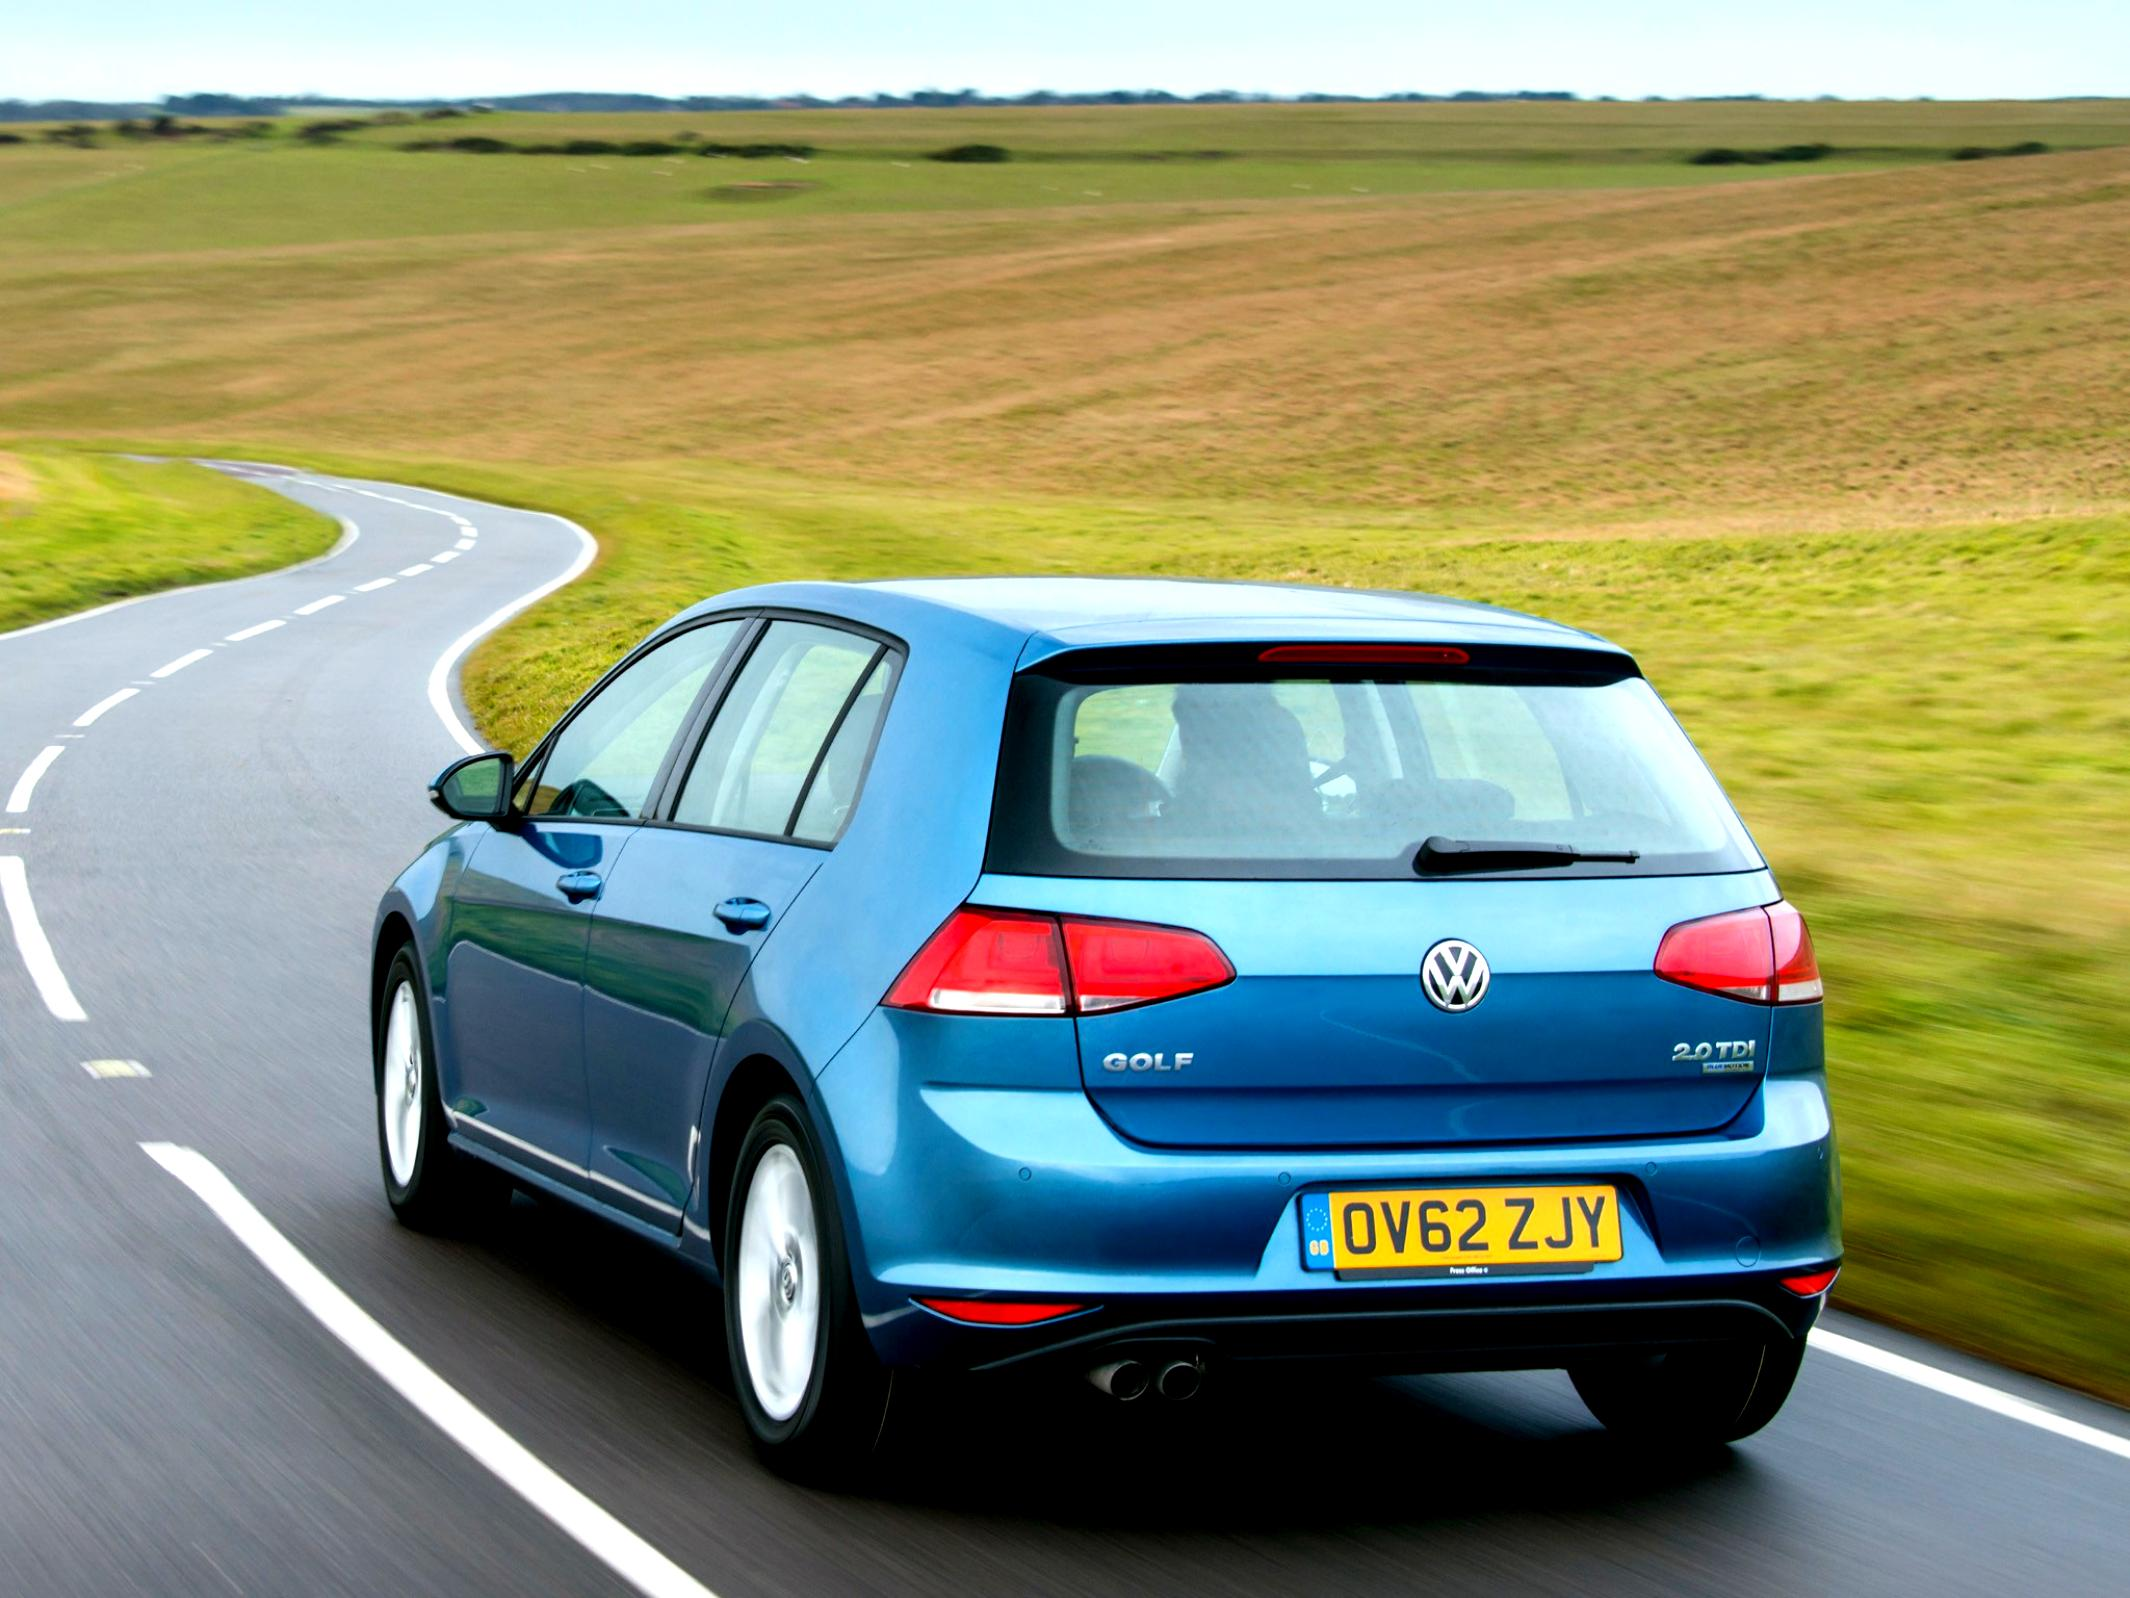 Volkswagen Golf VII 5 Doors 2012 #63